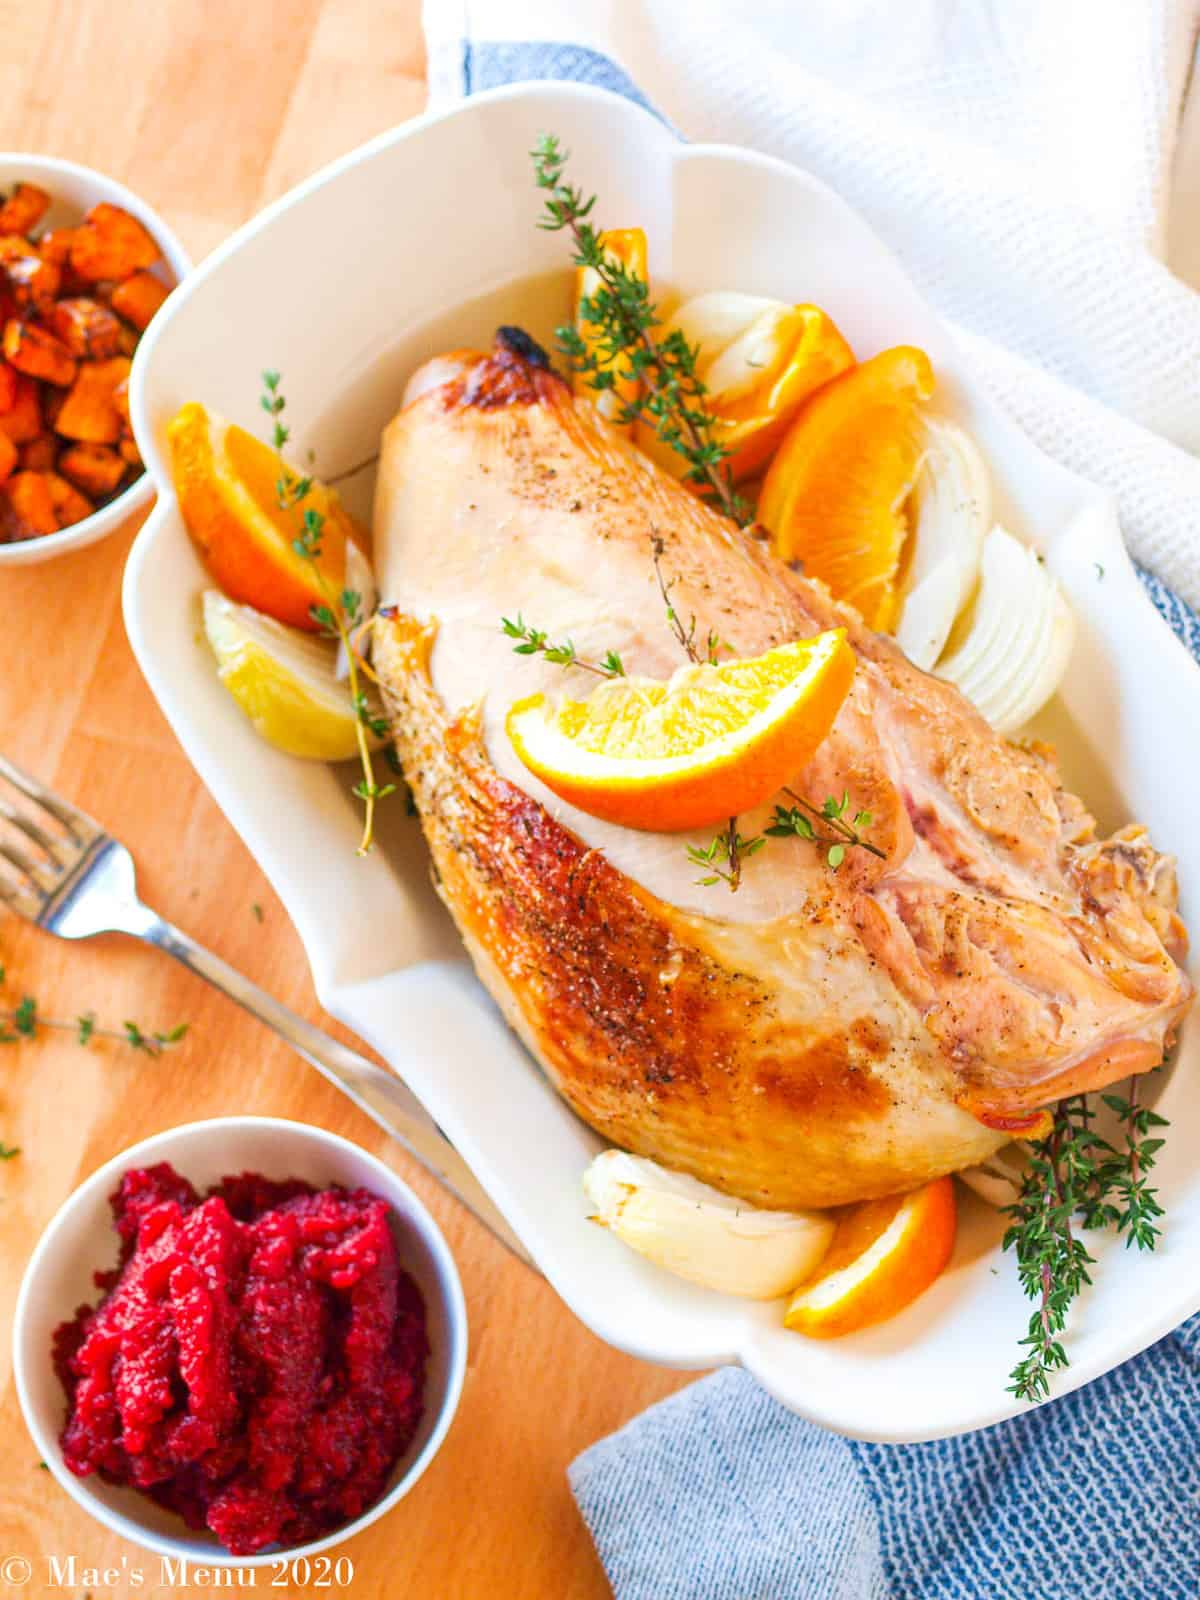 A roasted turkey breast next to a small dish of apple cranberry sauce